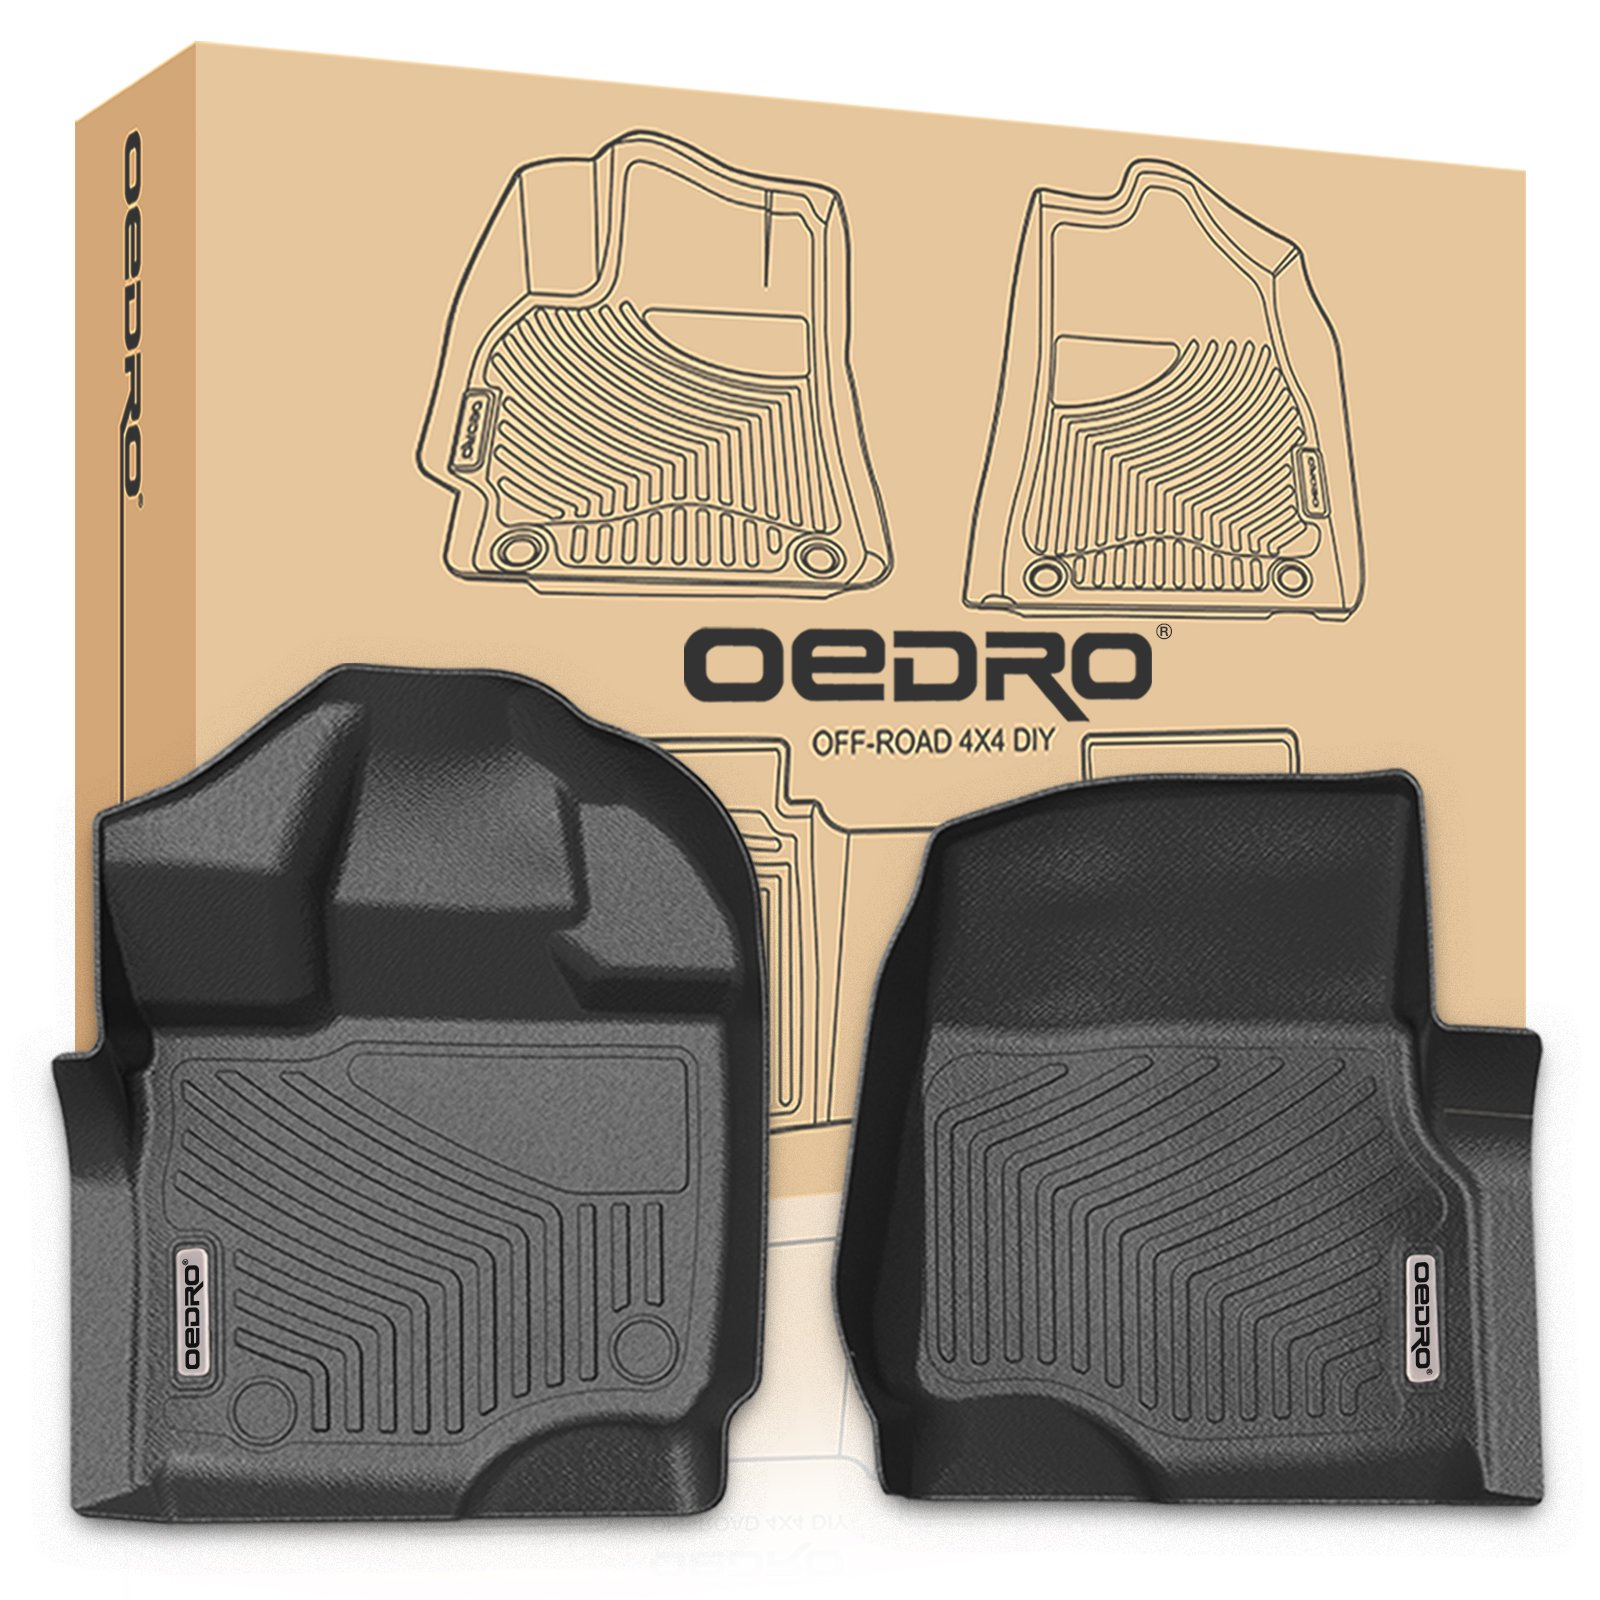 oEdRo Front Floor Mats Liners Compatible for 2015-2019 Ford F-150 SuperCrew Cab - Unique Black TPE All Weather Guard (1st Row Driver/Passenger Only)